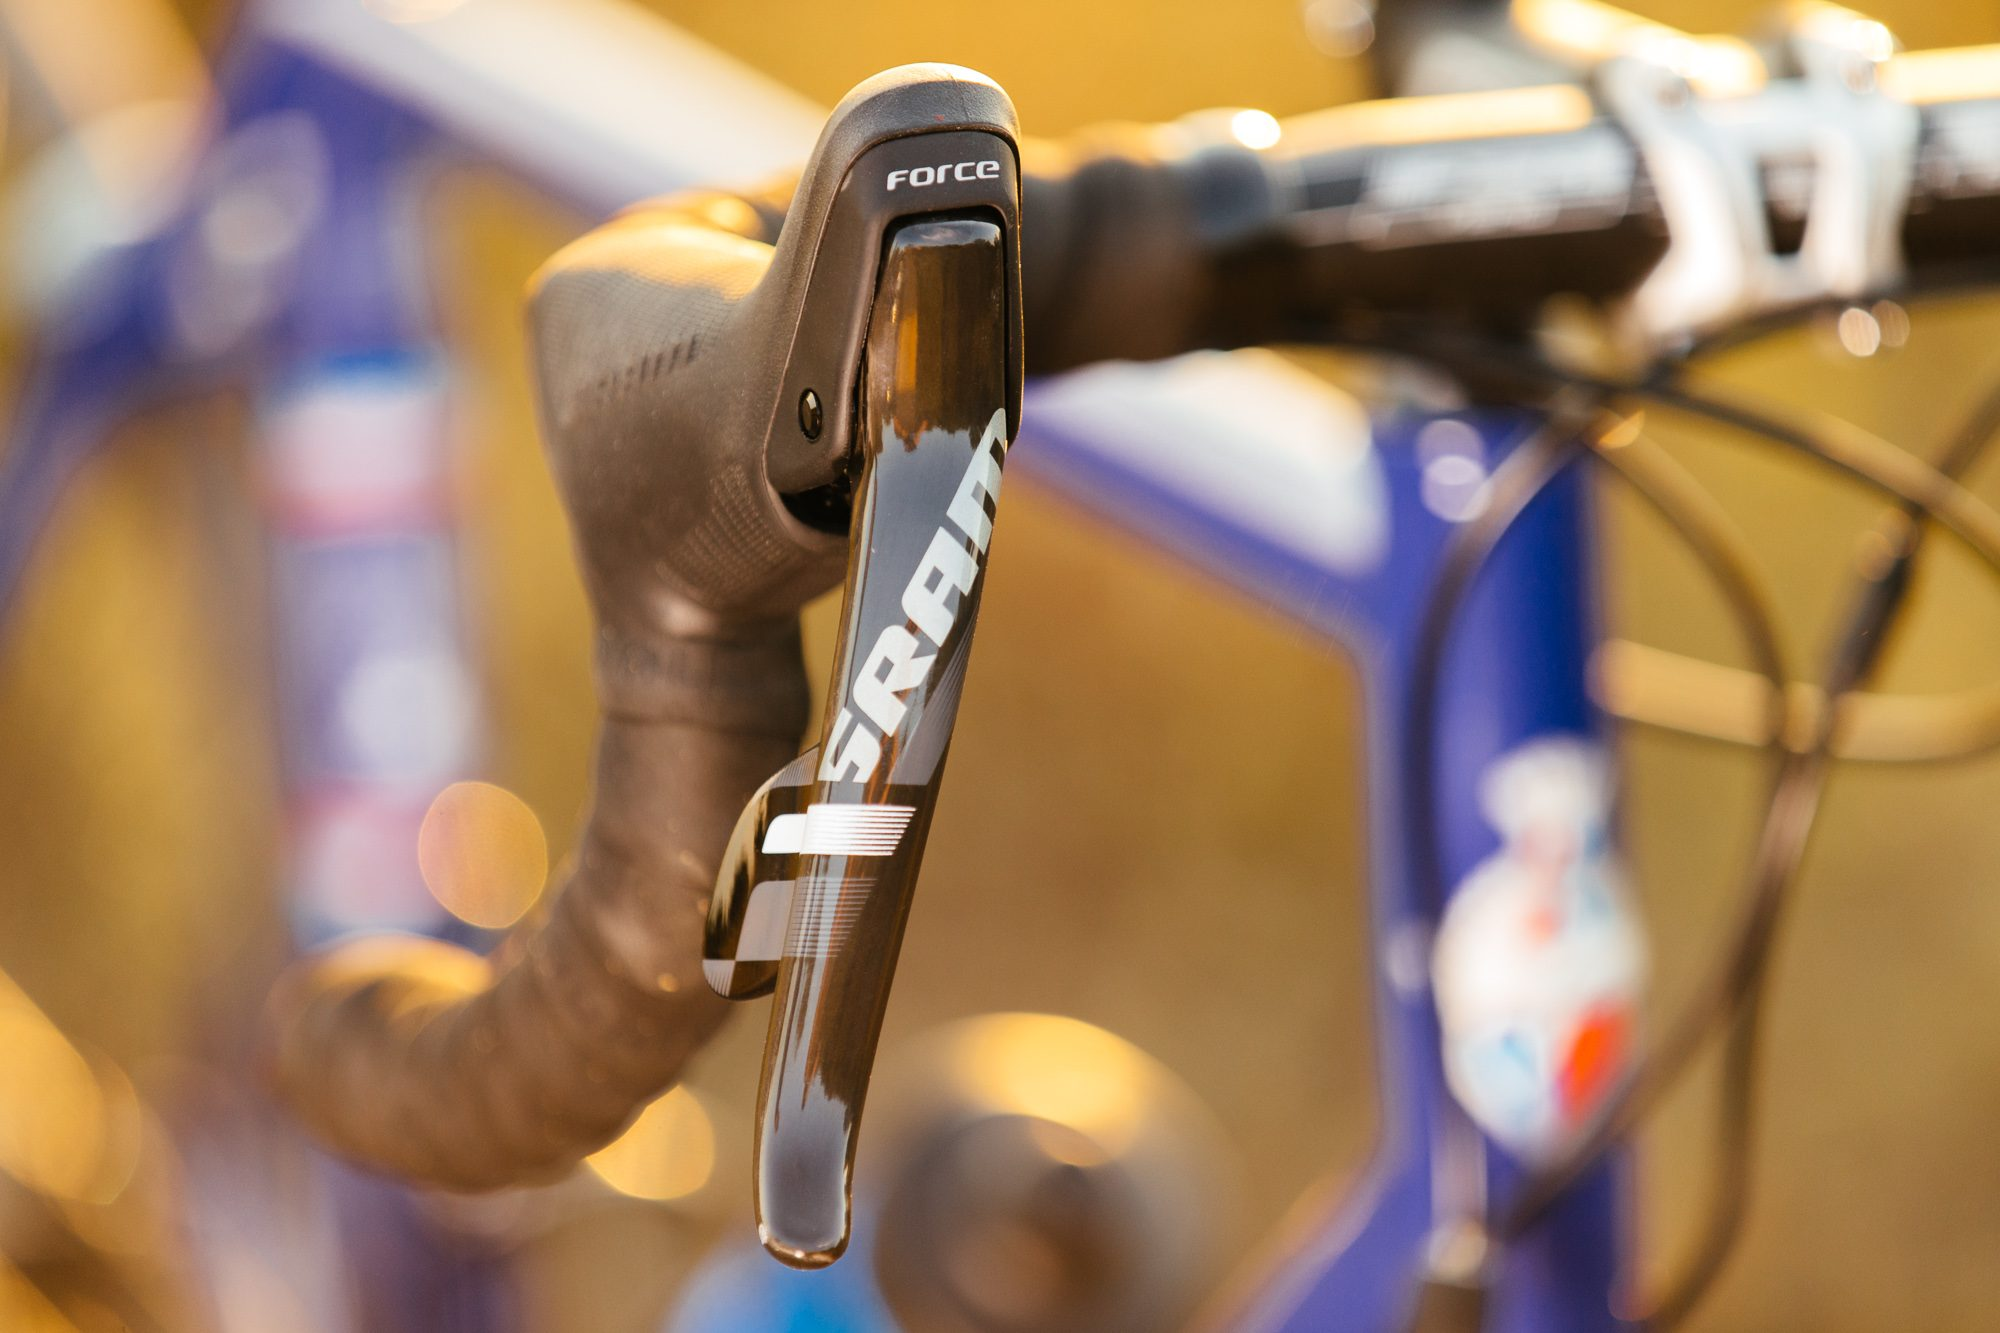 The Fairdale Goodship with SRAM Force 22